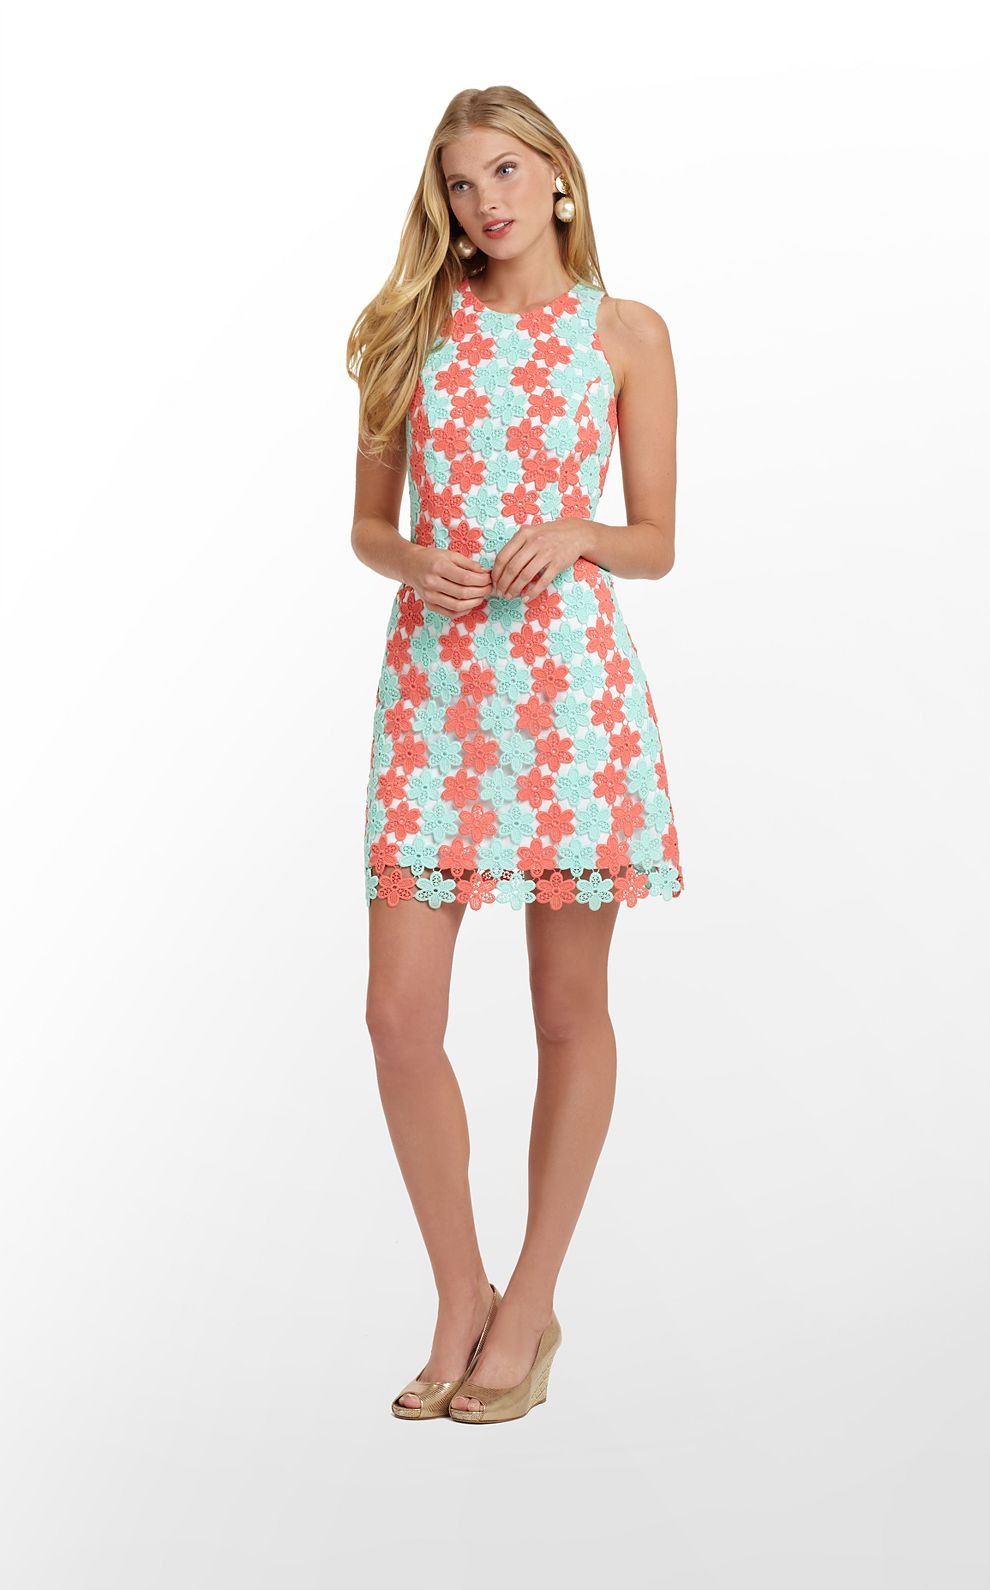 Lilly Pulitzer Sale Dresses Re Lilly